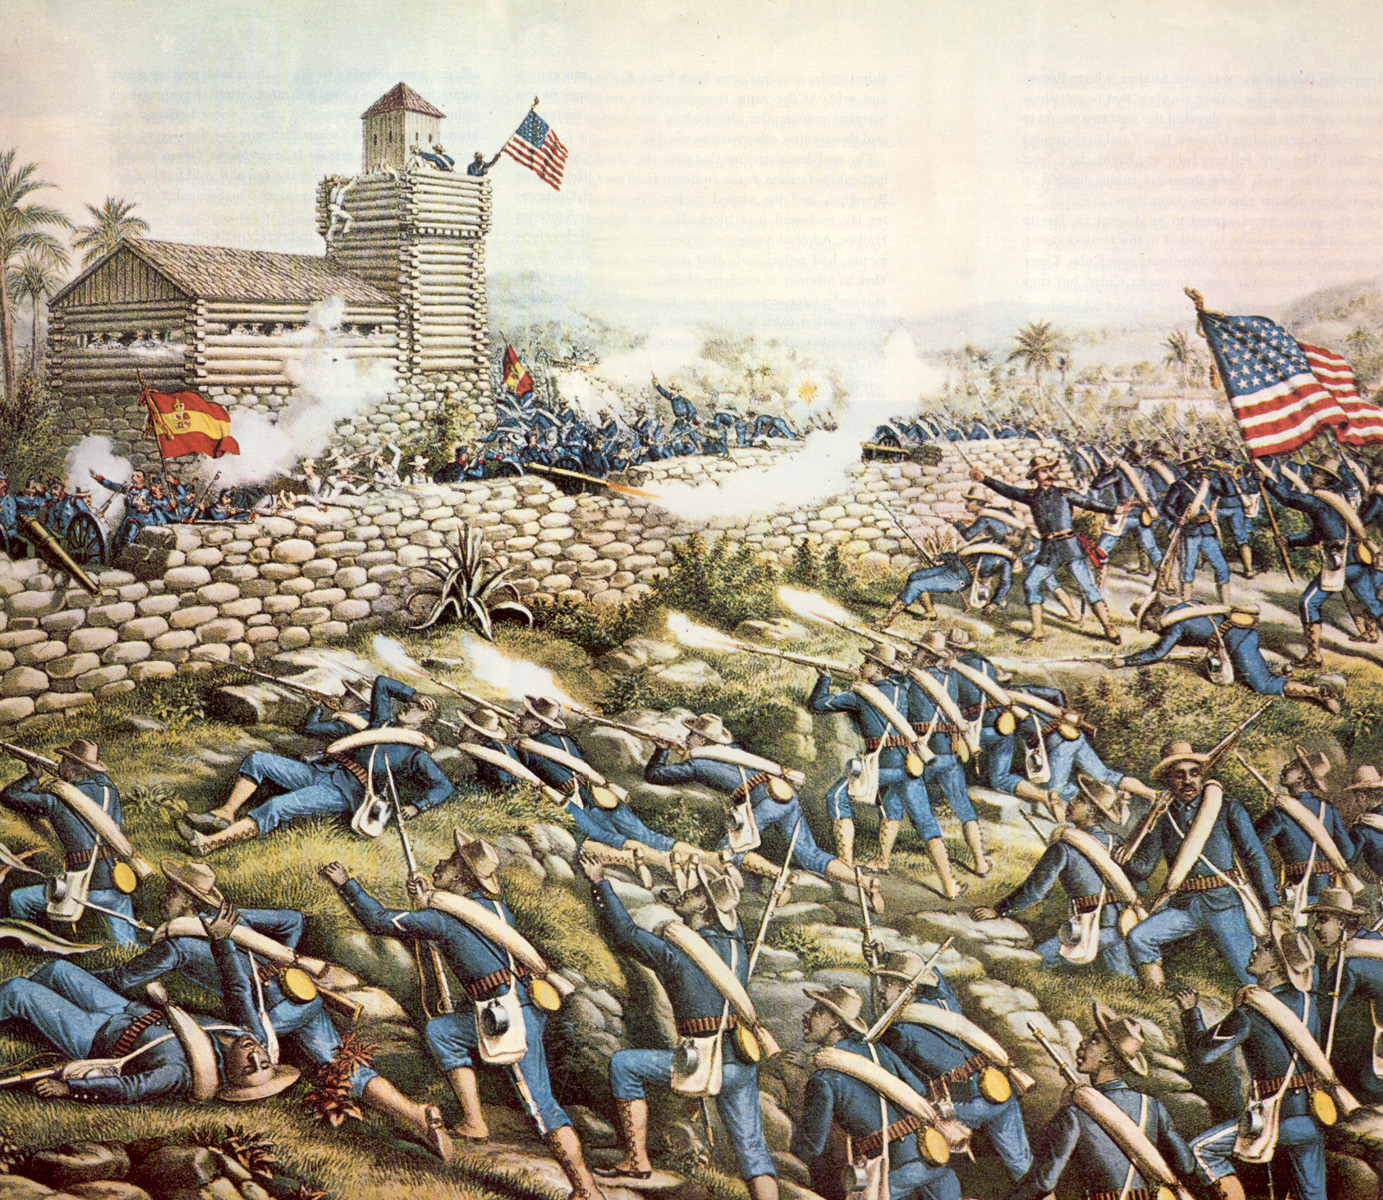 The Spanish-American War was a relatively brief affair, lasting from April 1898 to August 1898. It had long lasting implications for the United States, giving it possession of Puerto Rico, Guam, and the Philippines. Image obtained from Wikimedia.